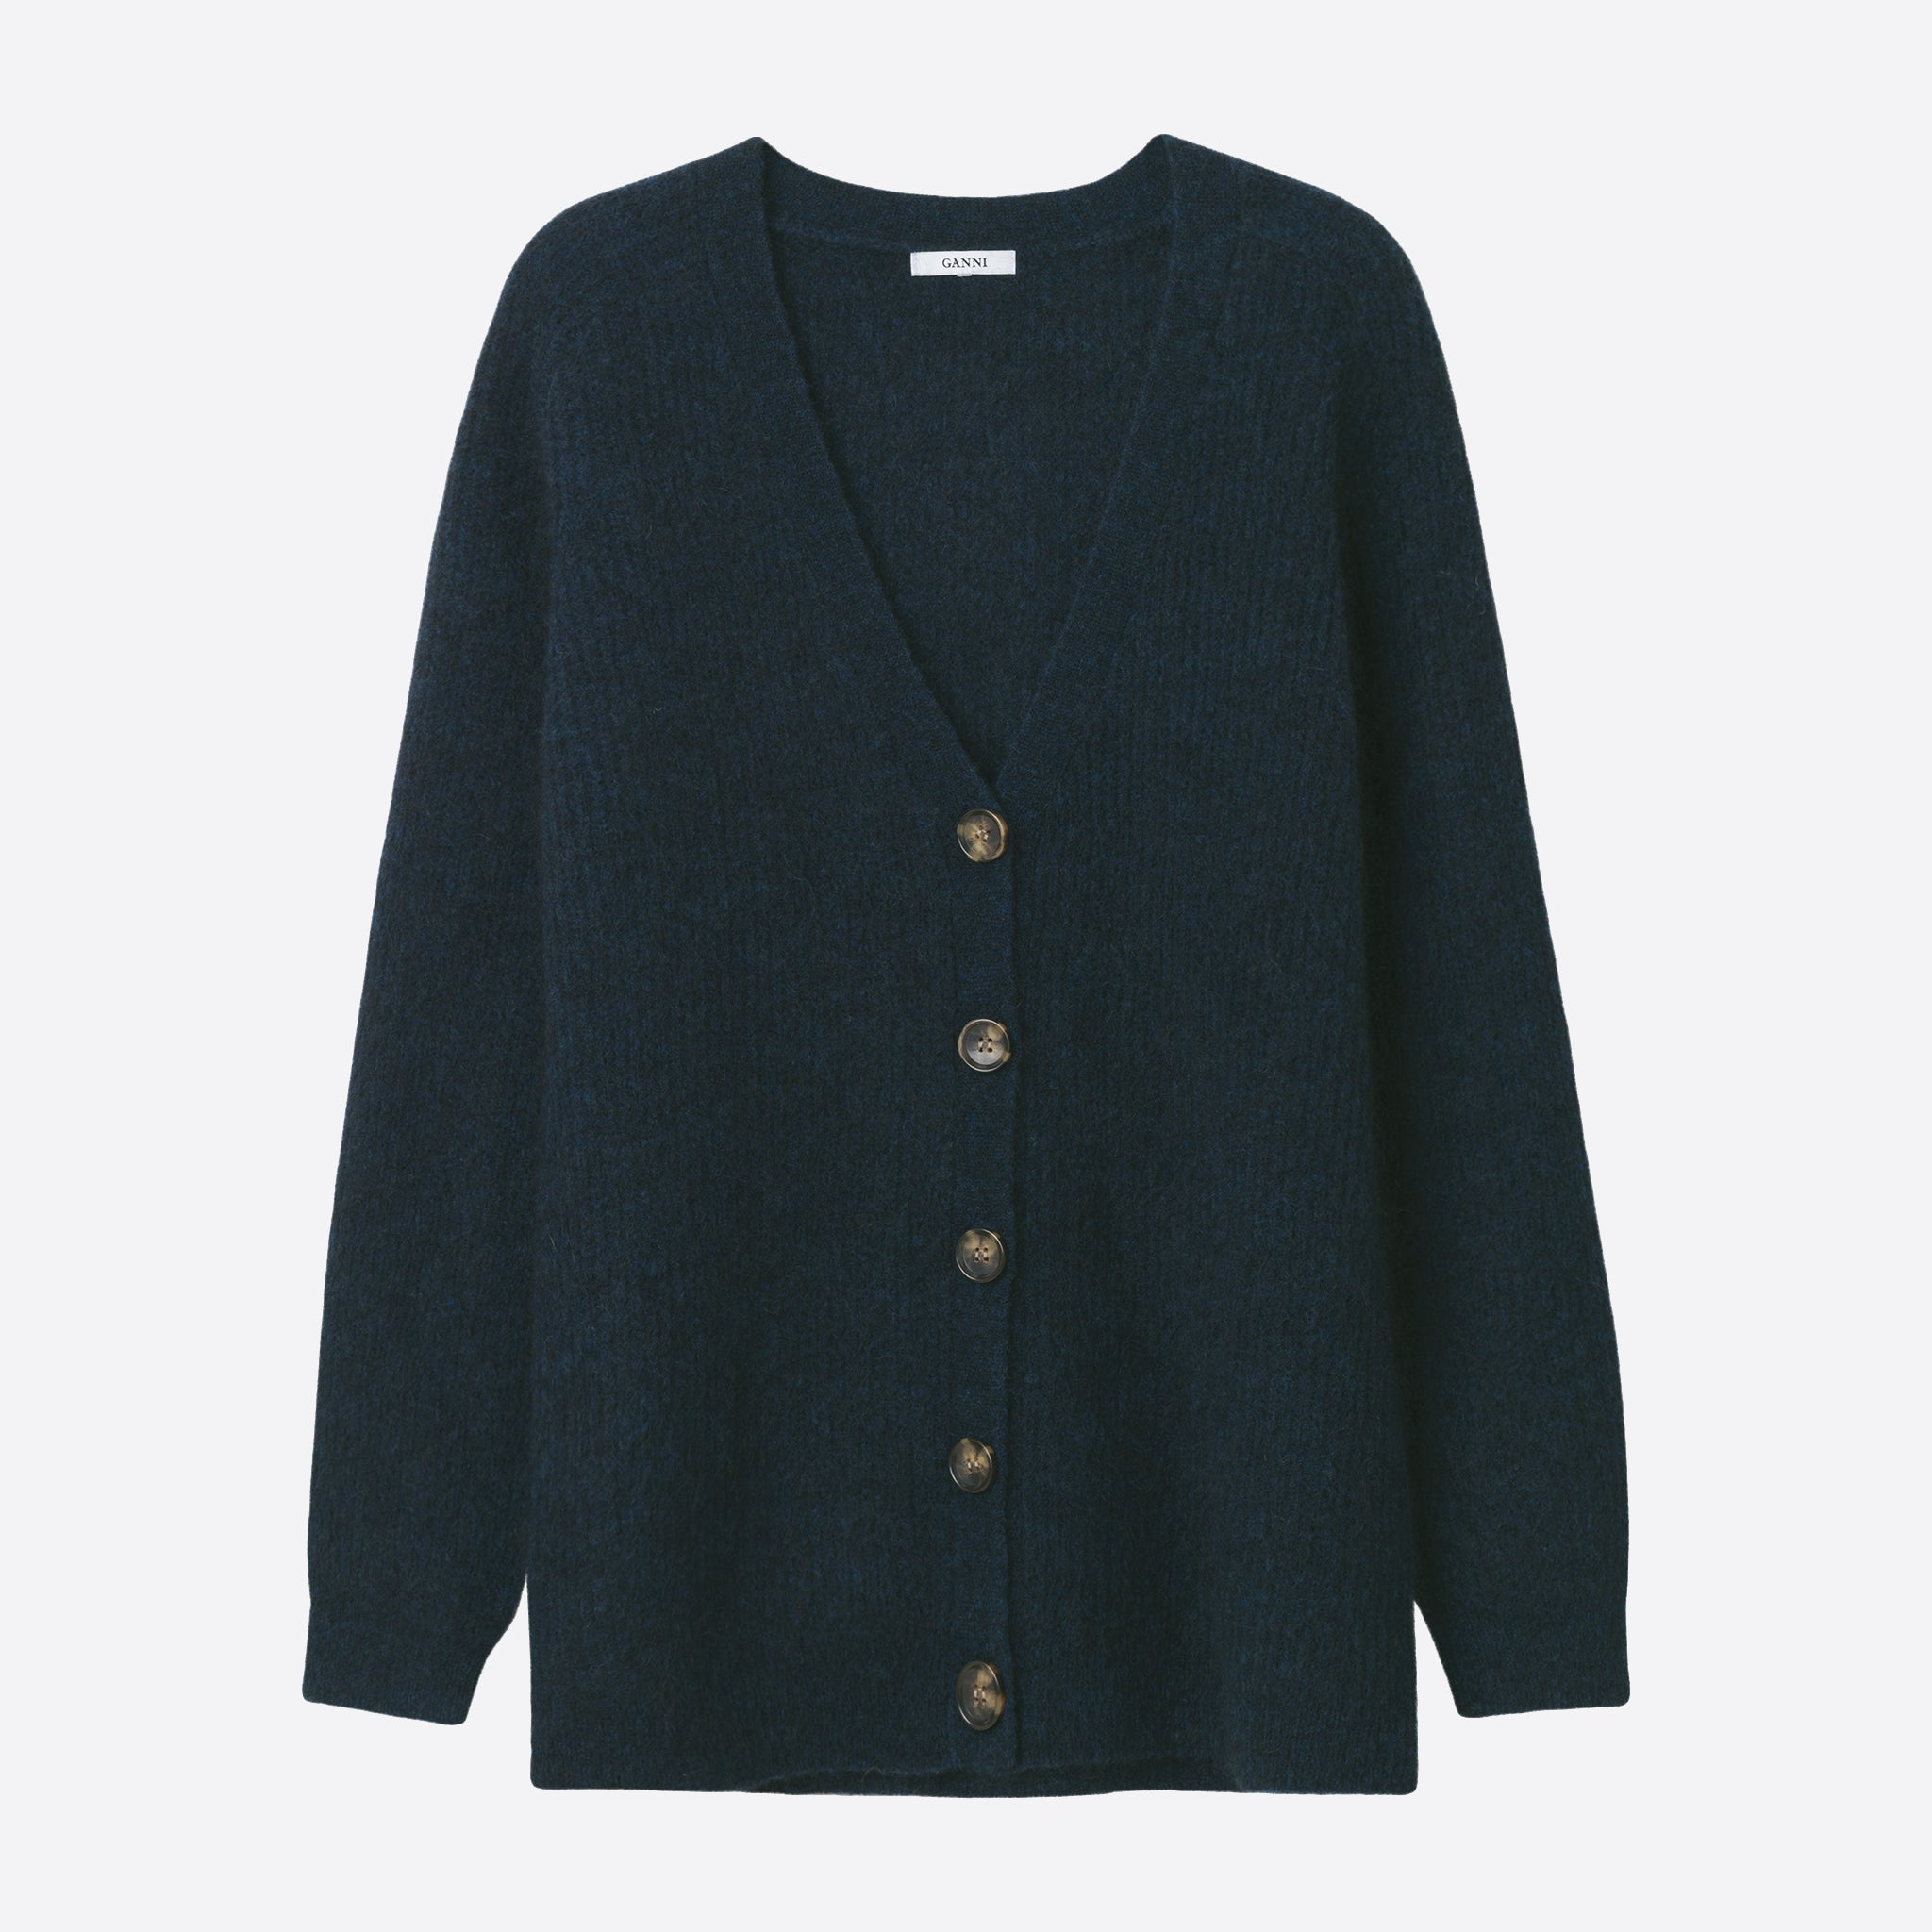 Ganni Callahan Soft Wool Knit Cardigan in Total Eclipse